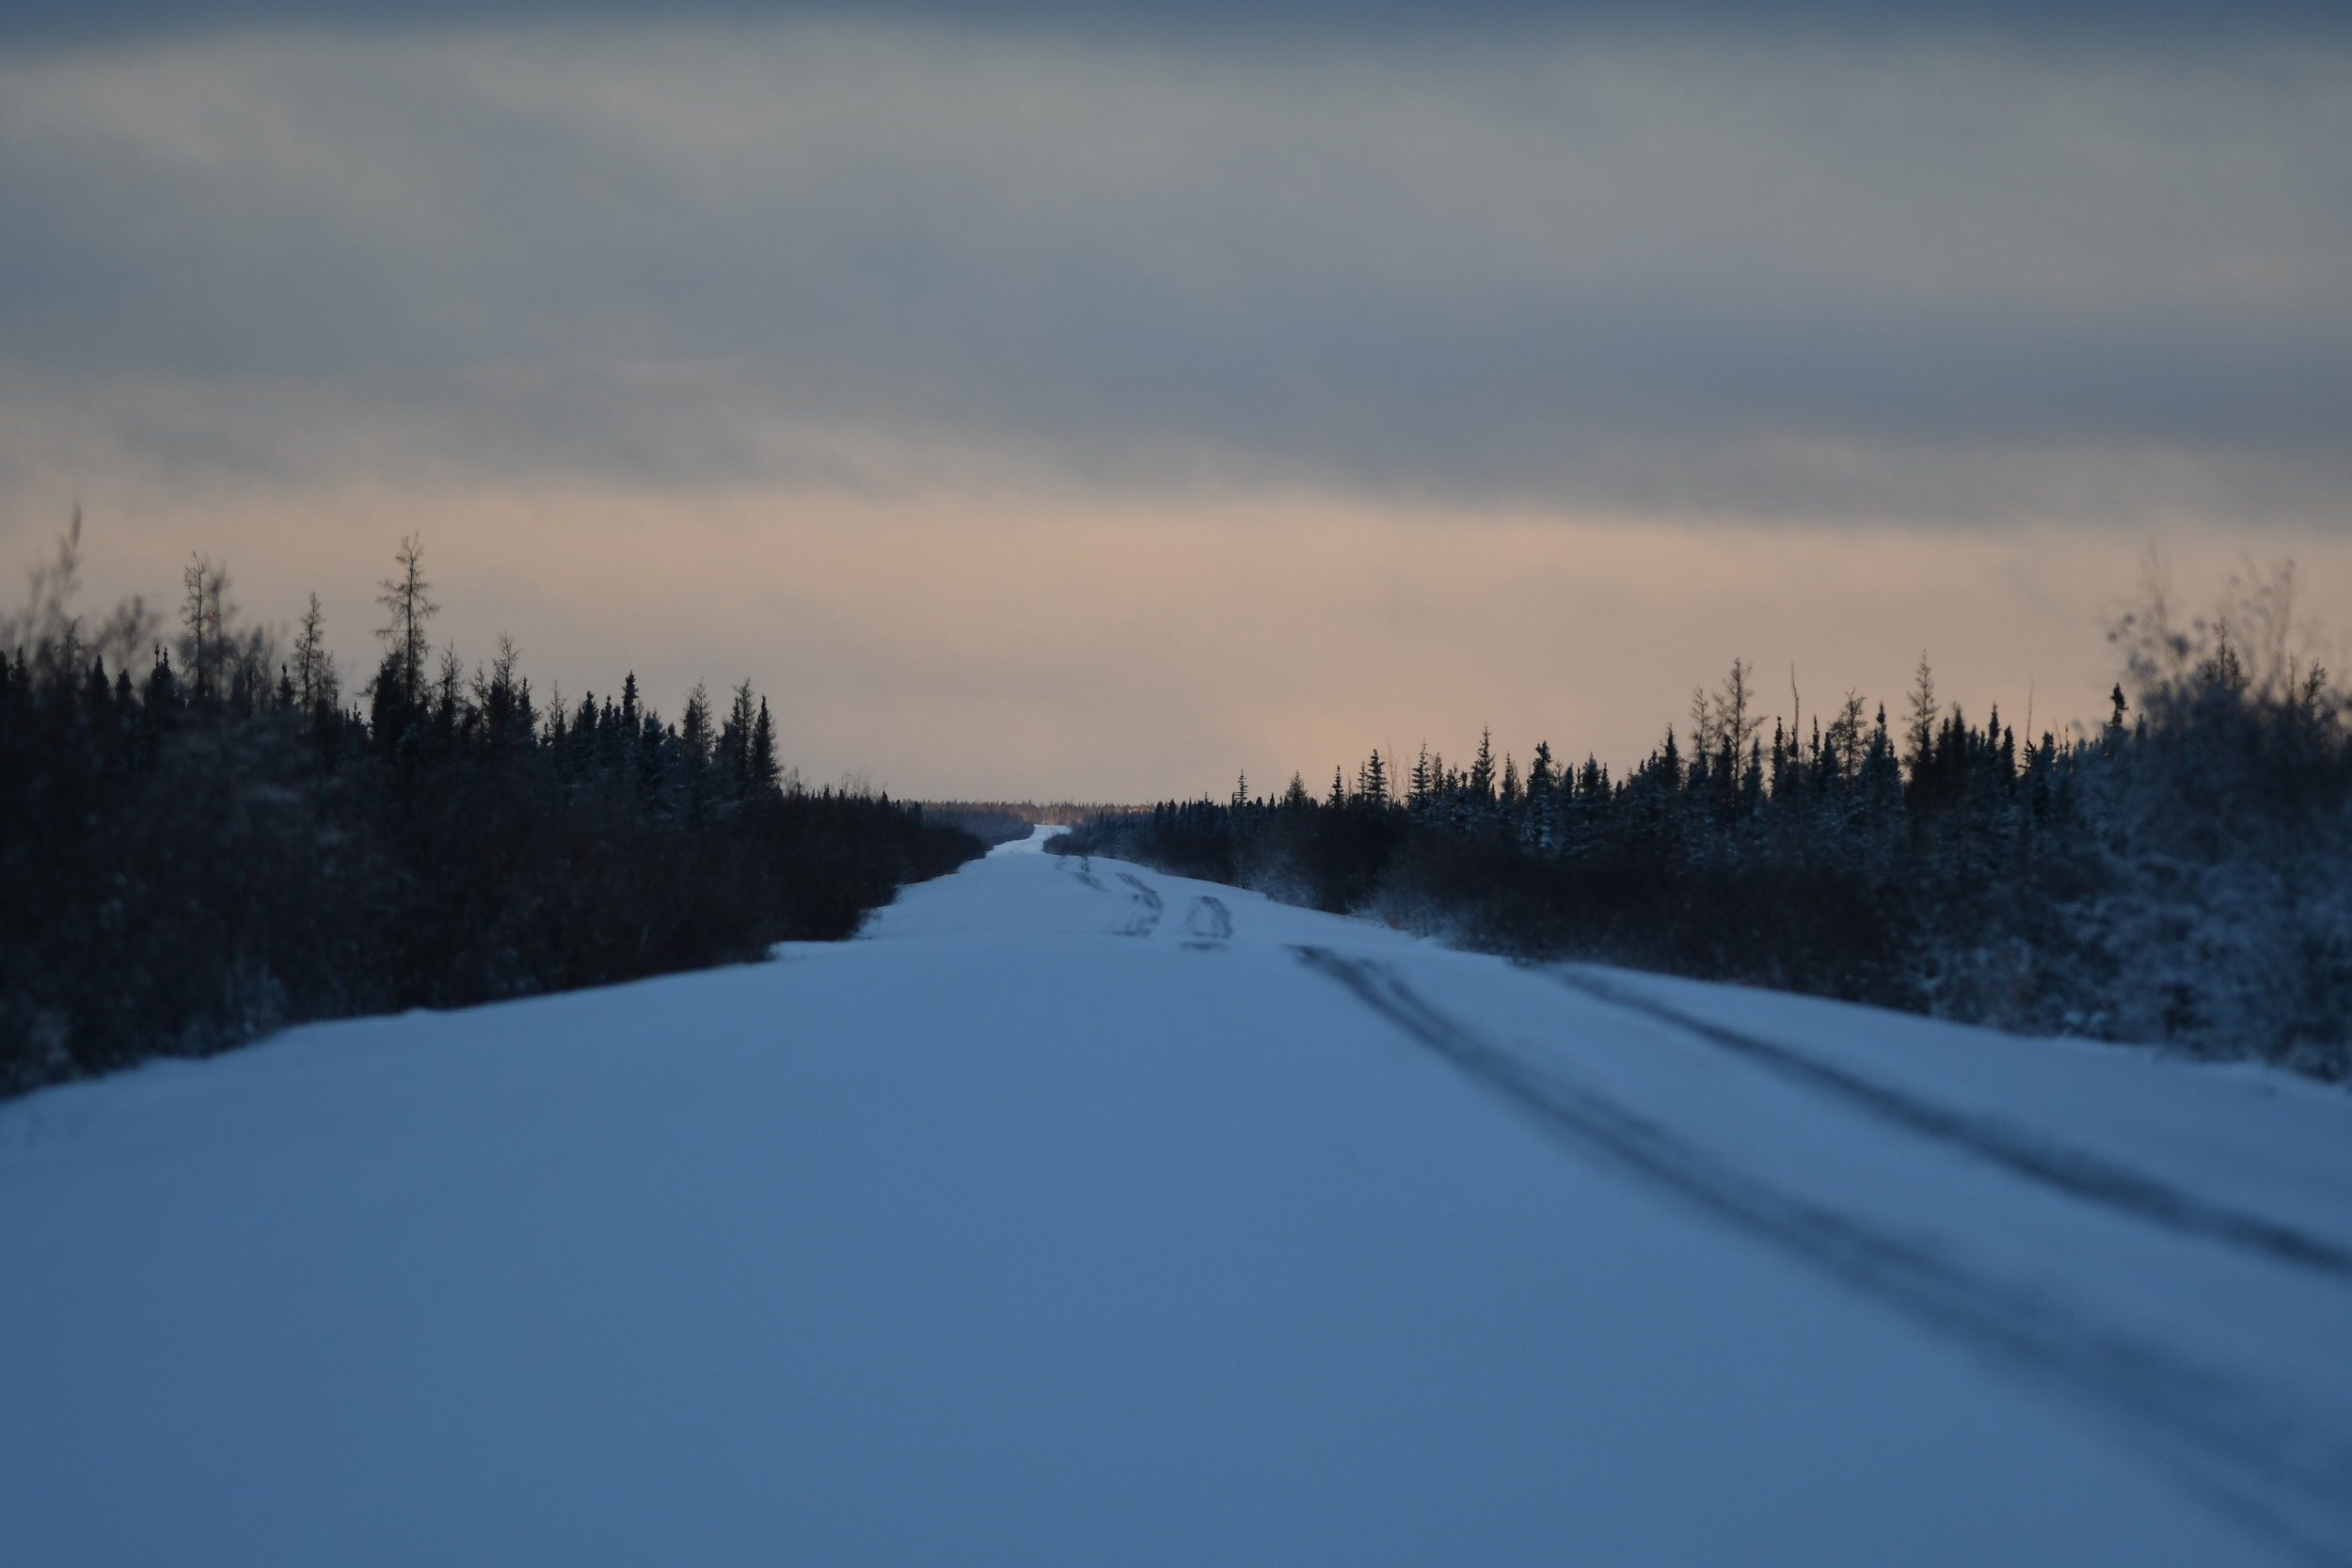 The Dempster Highway at dawn.